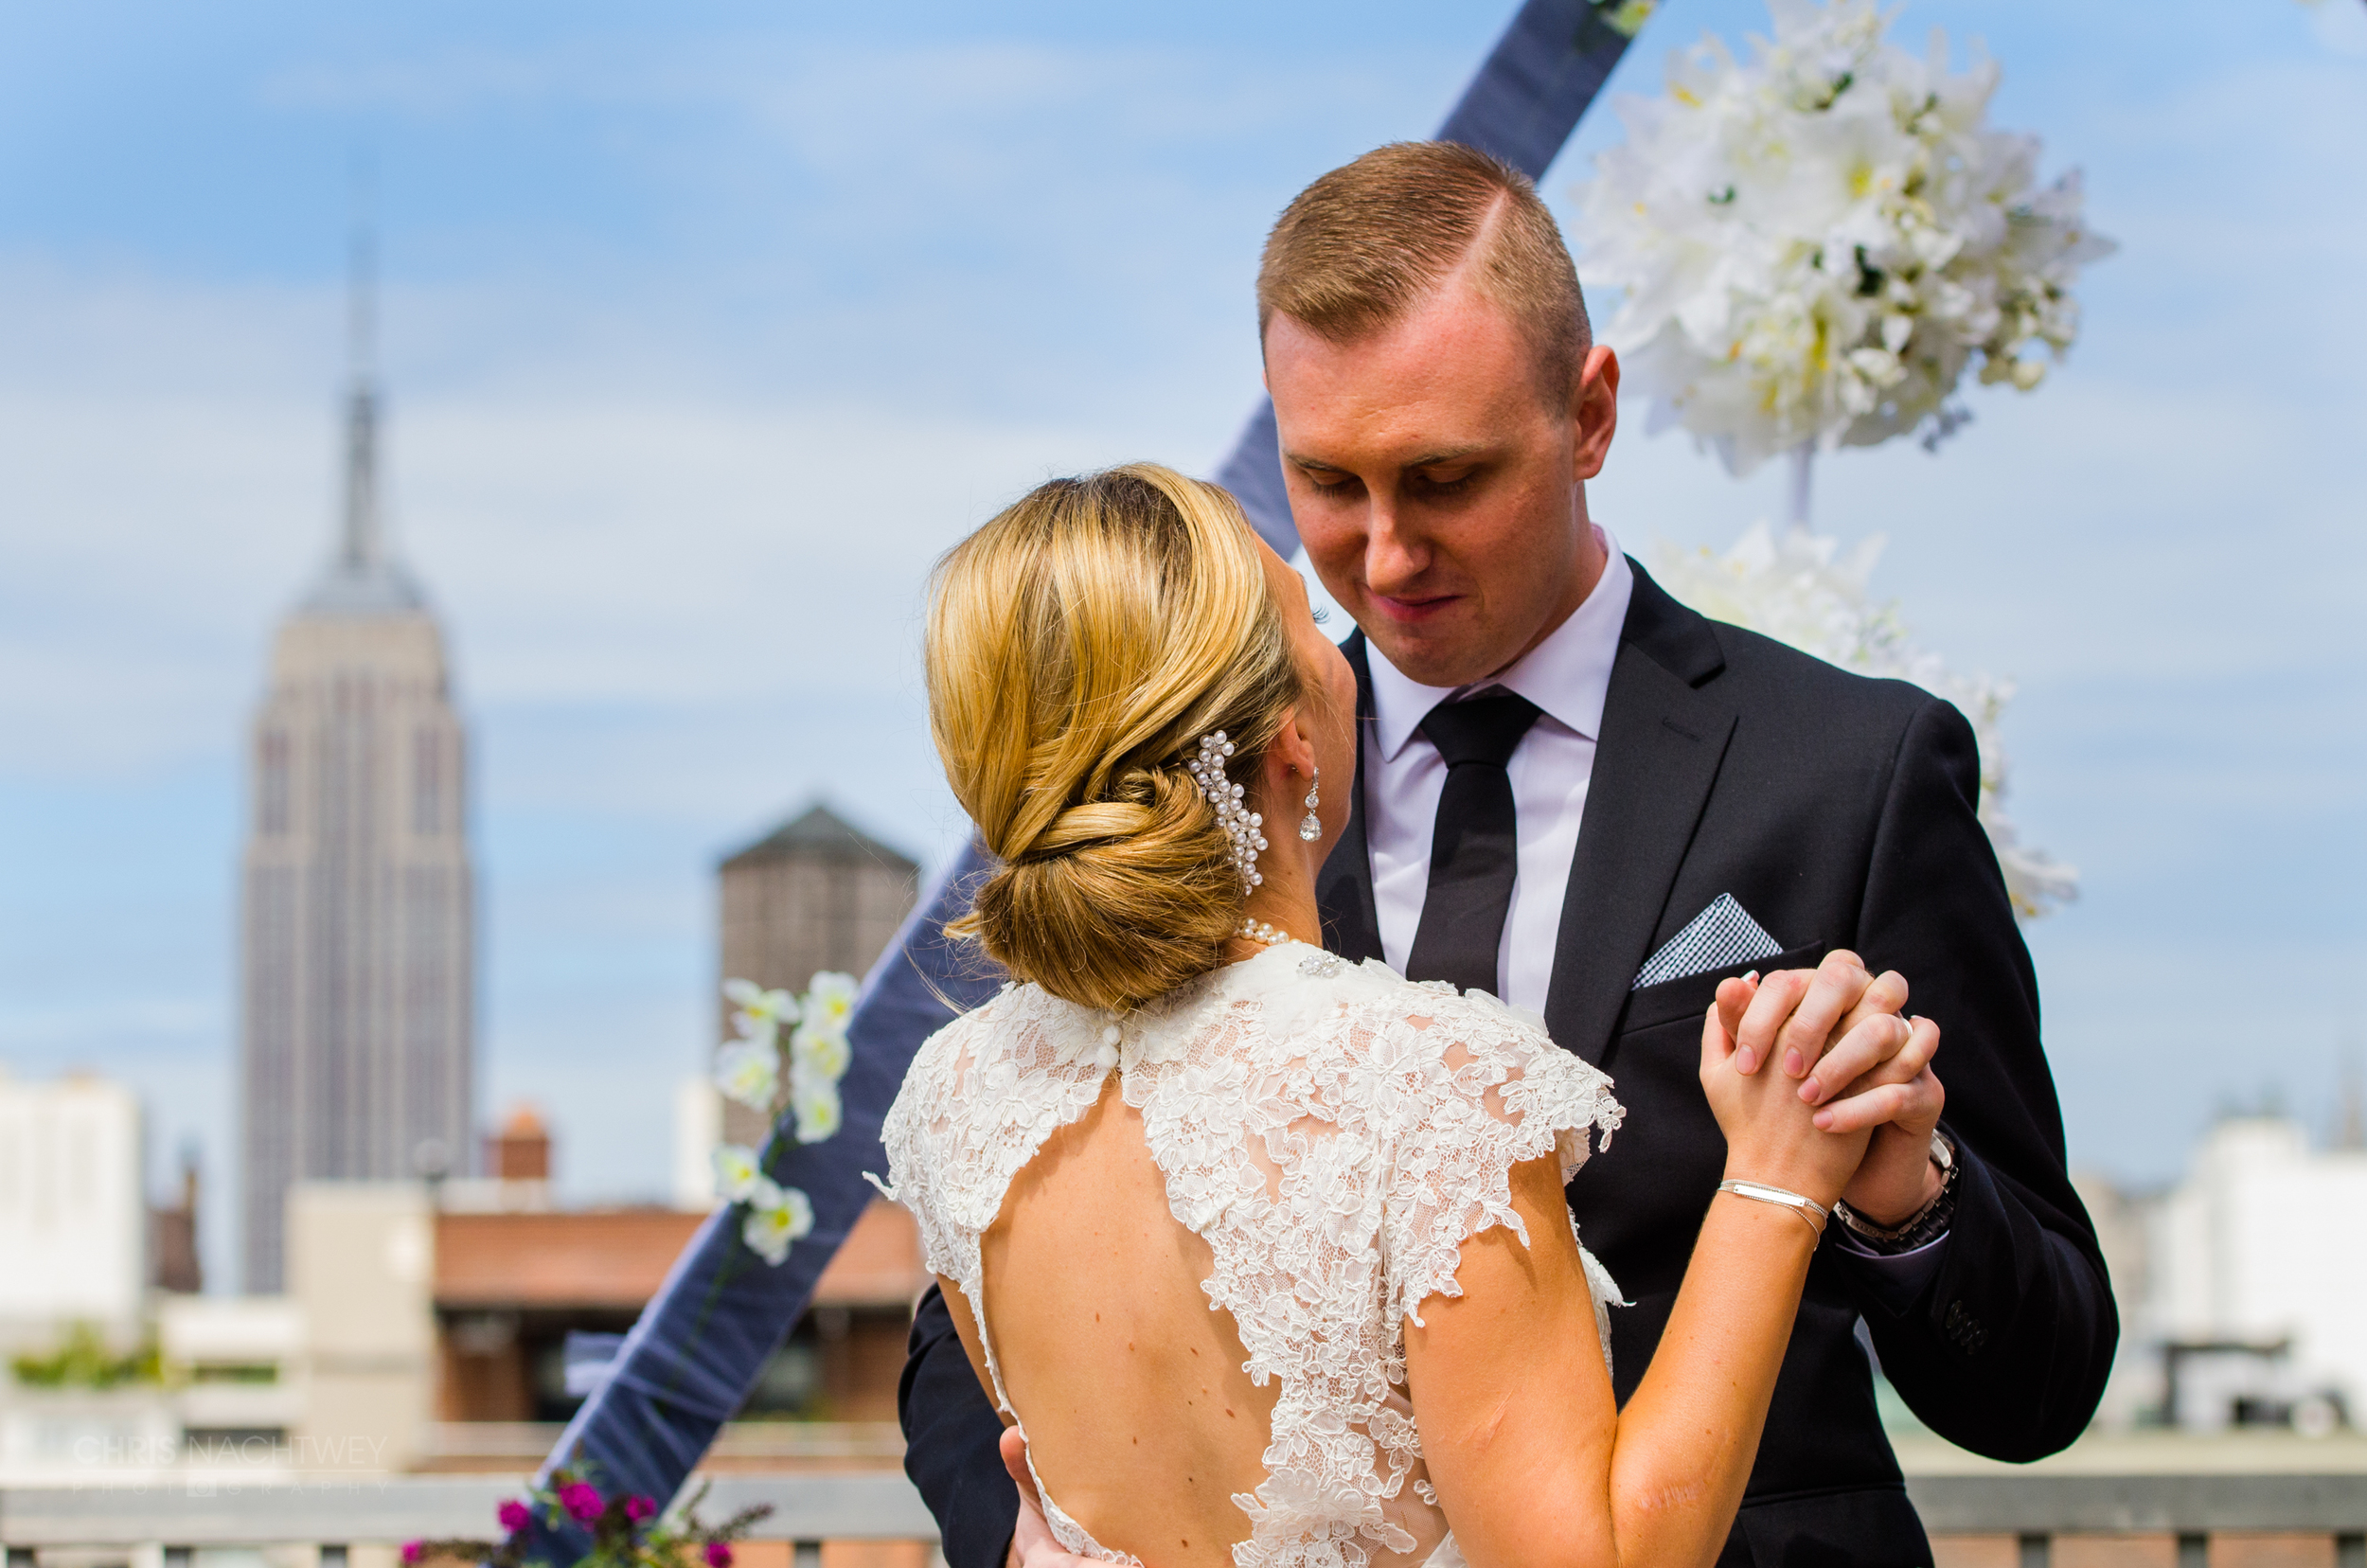 nyc-rooftop-wedding-photos-chris-nachtwey-photography.jpg